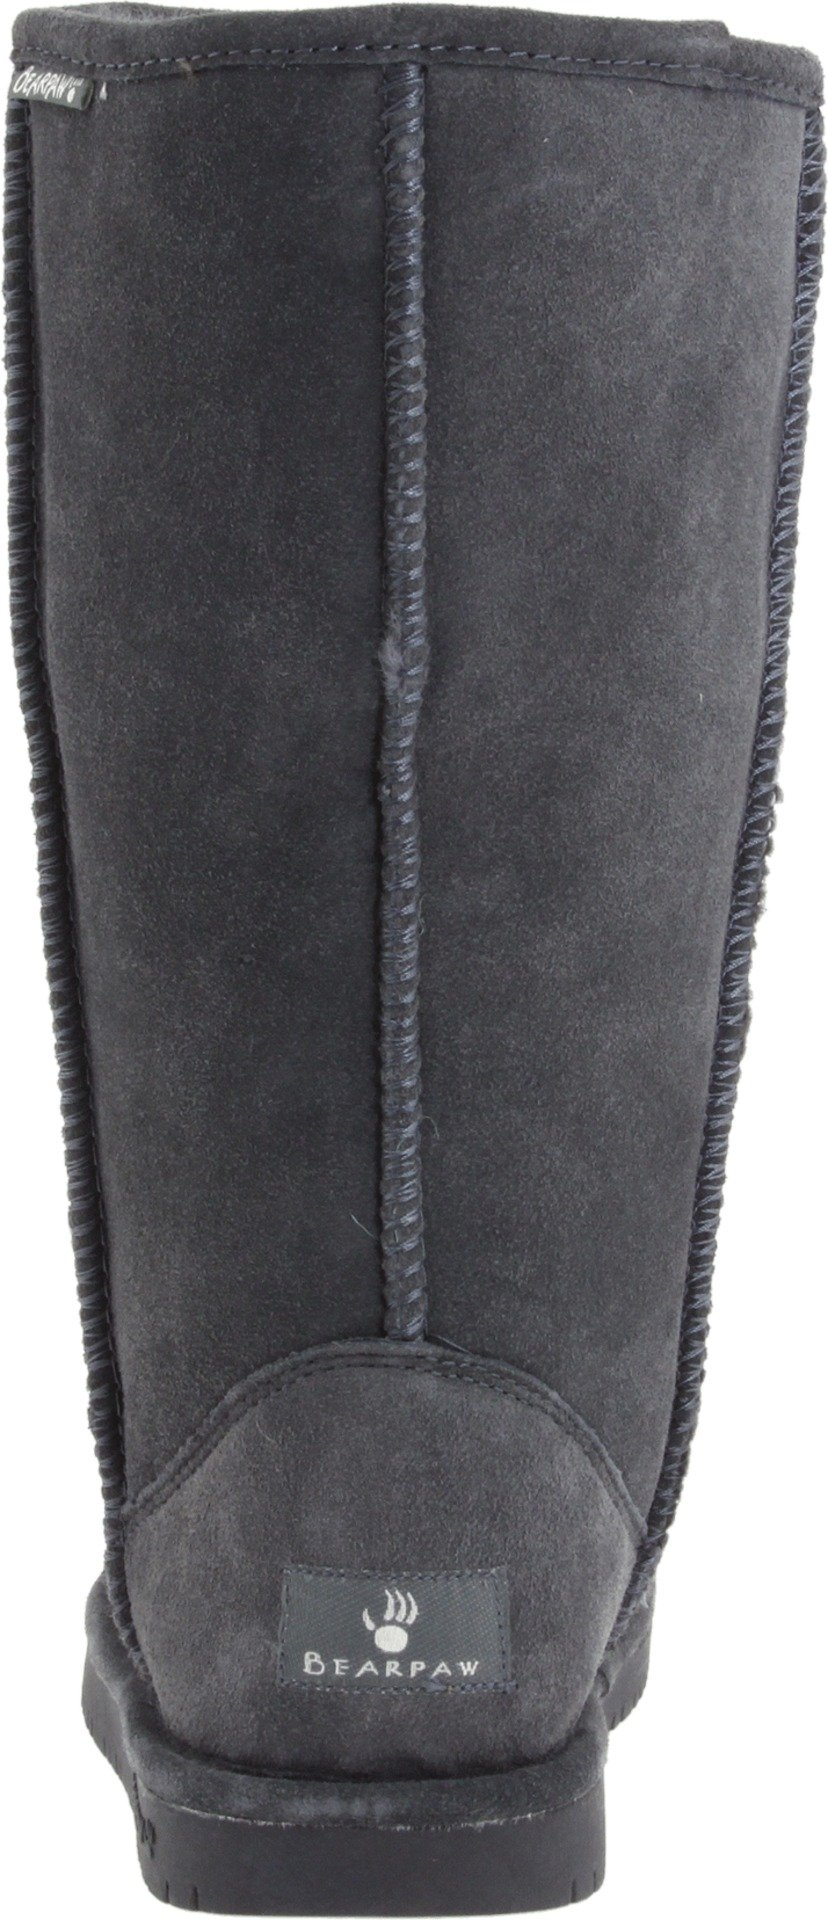 BEARPAW Women's Emma Tall Winter Boot, Charcoal, 9 M US by BEARPAW (Image #2)